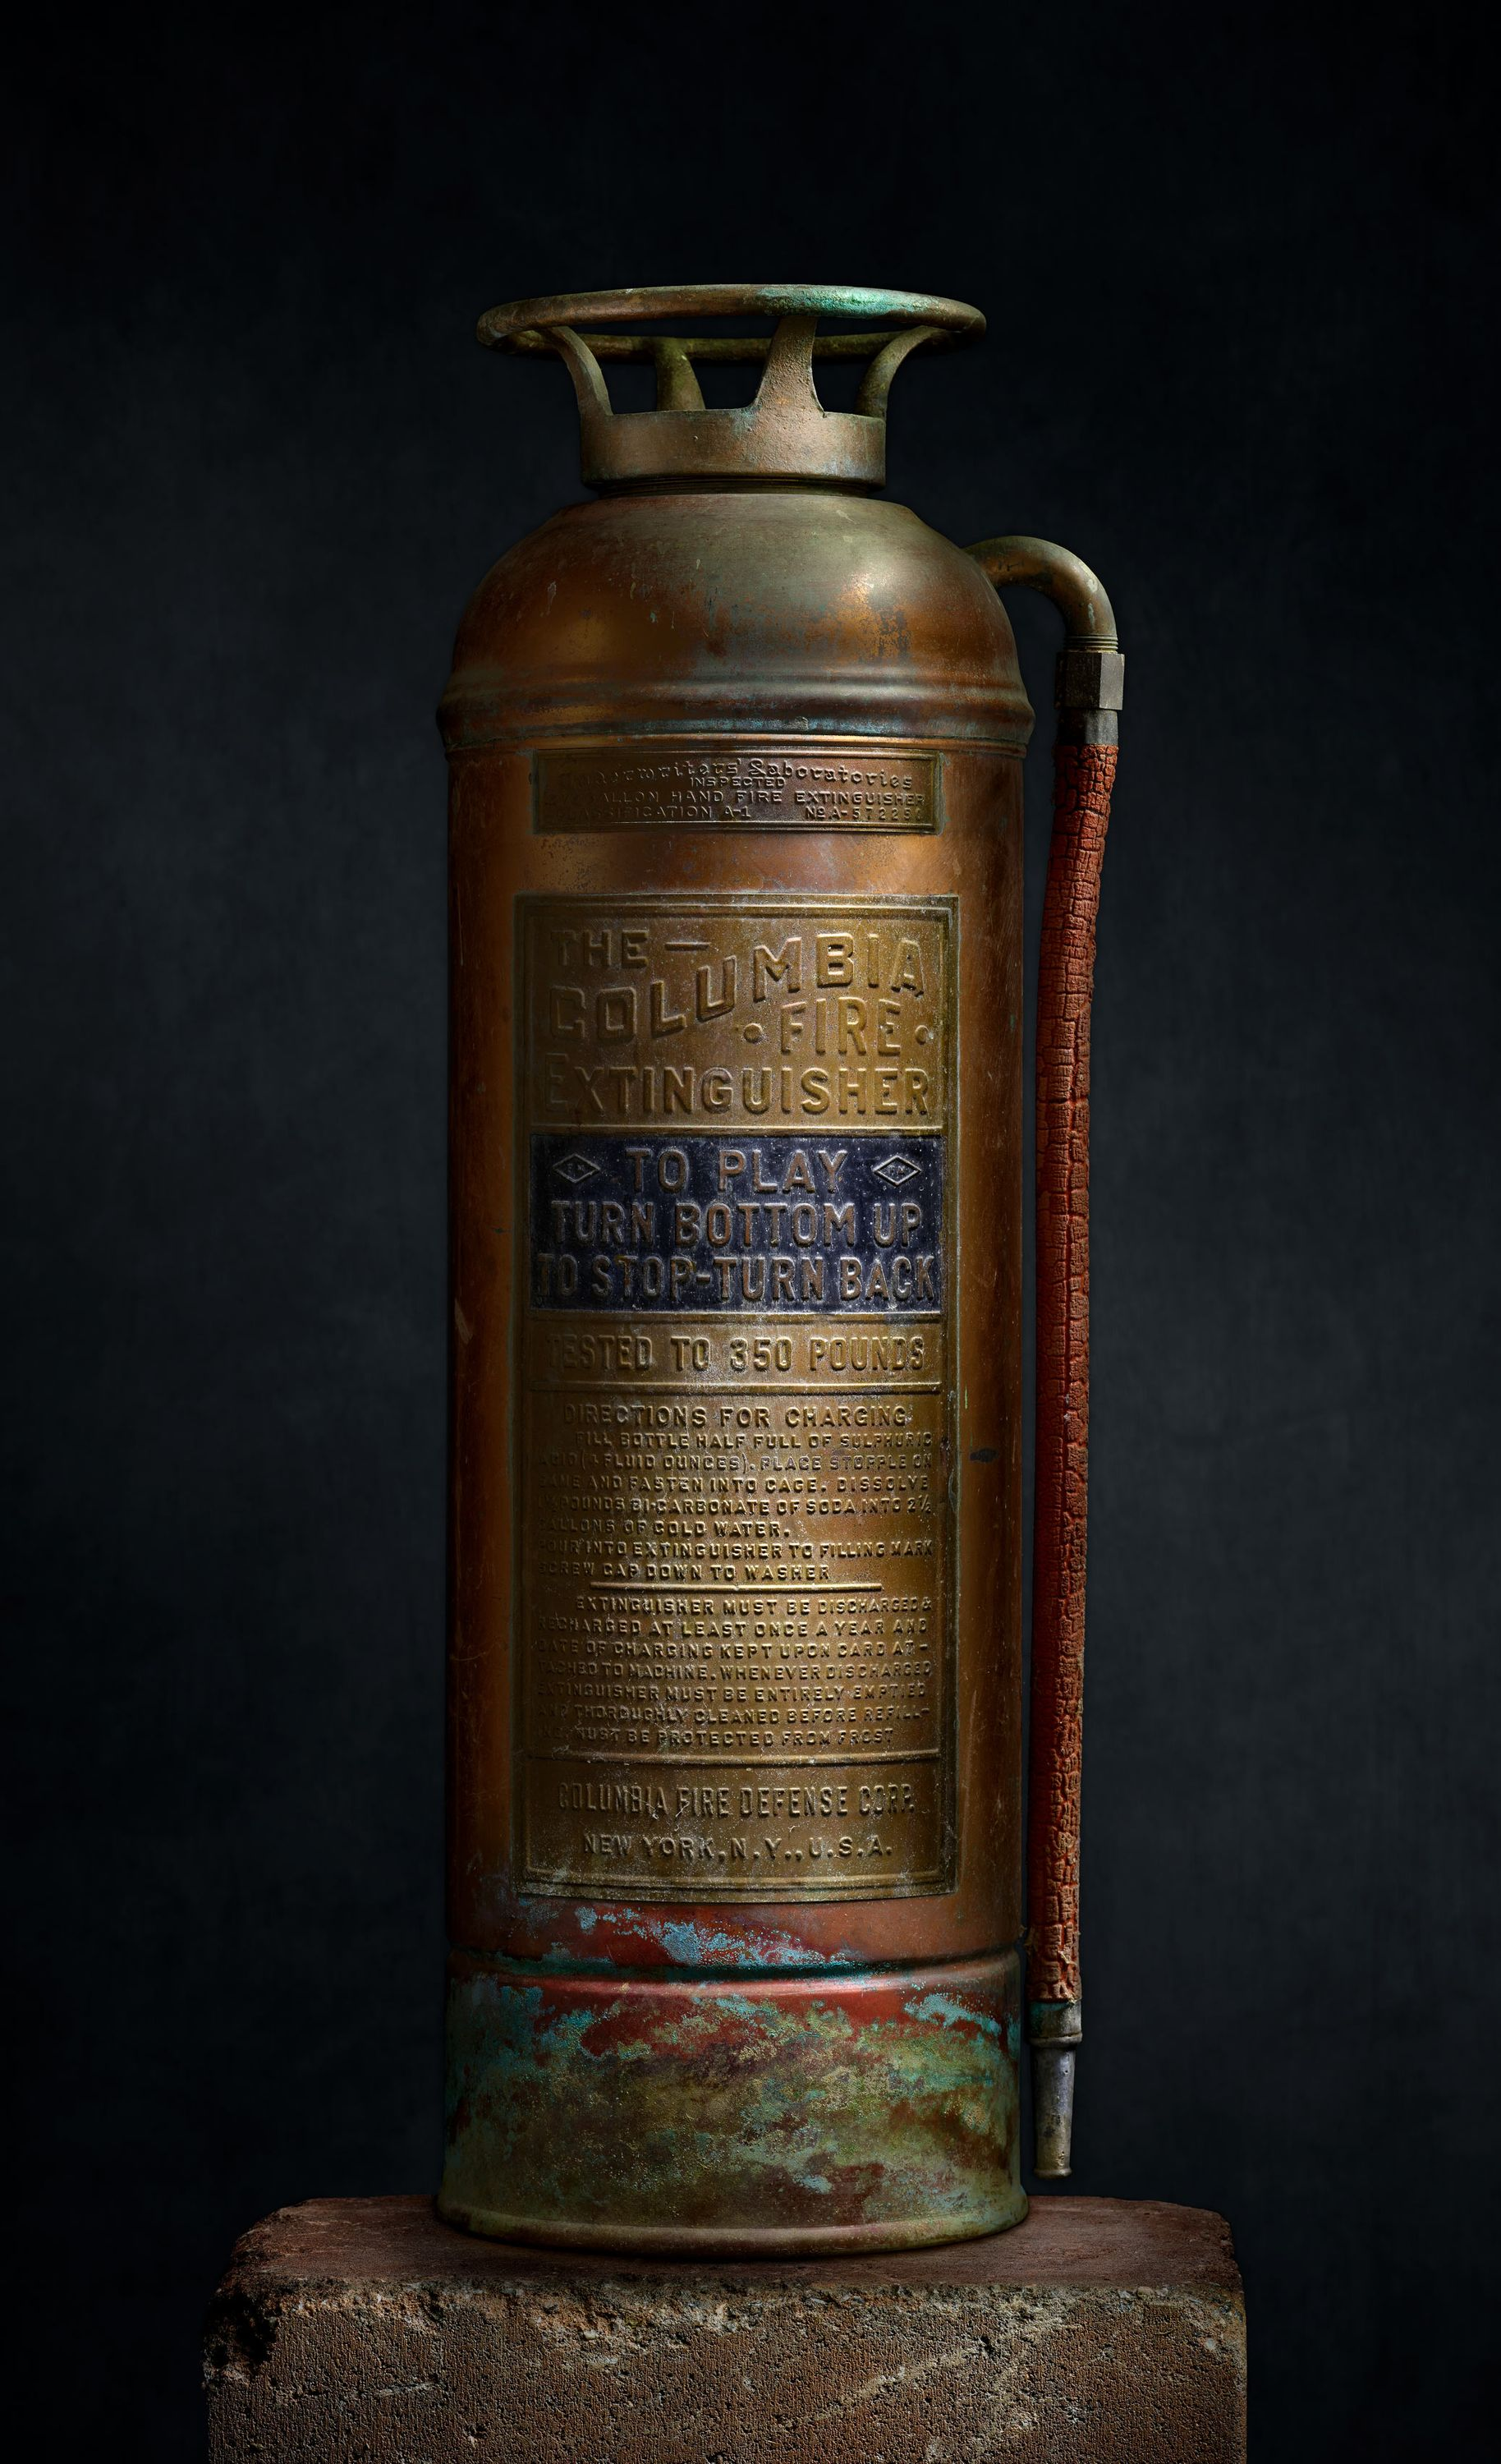 The Columbia Fire Extinguisher